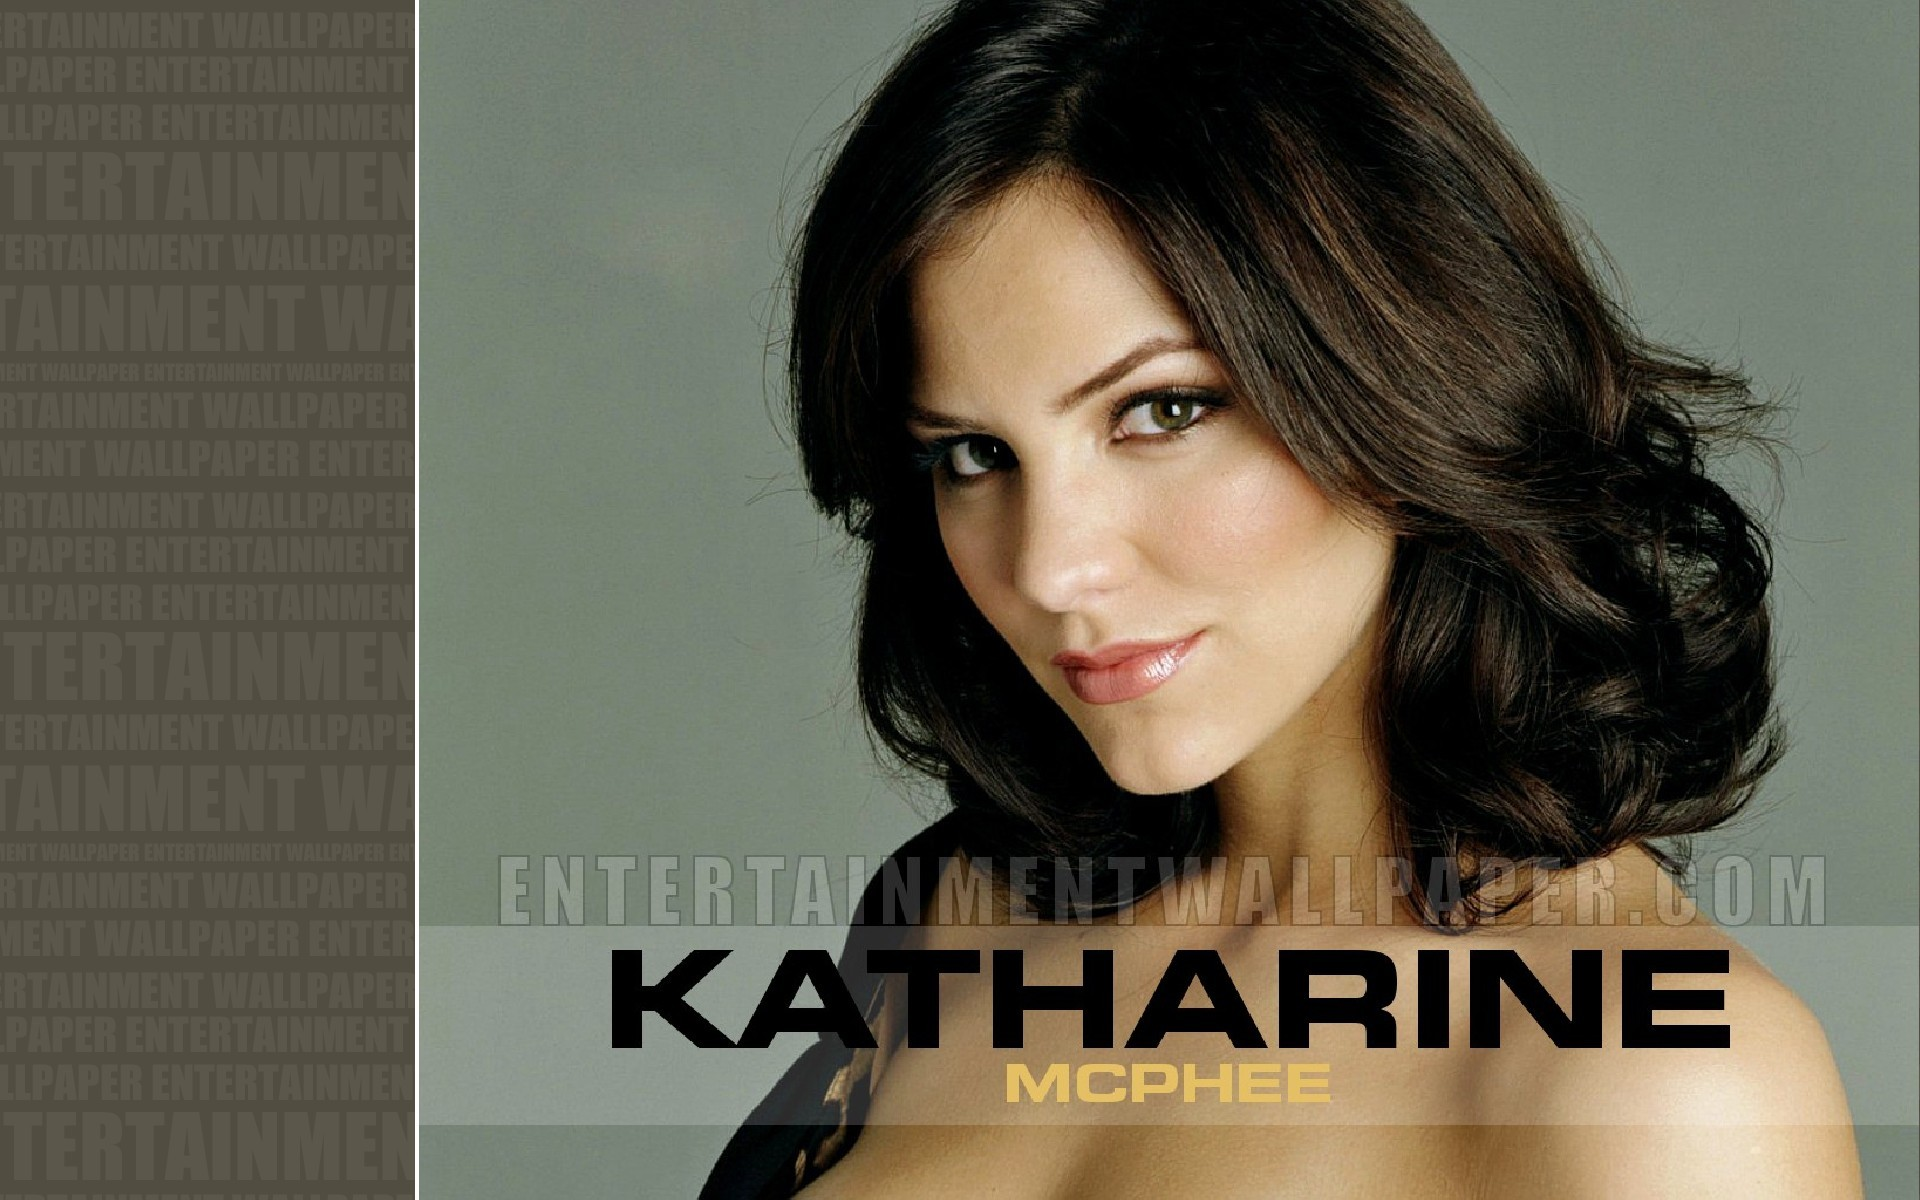 1920x1200 Katharine McPhee Wallpaper - Original size, download now.